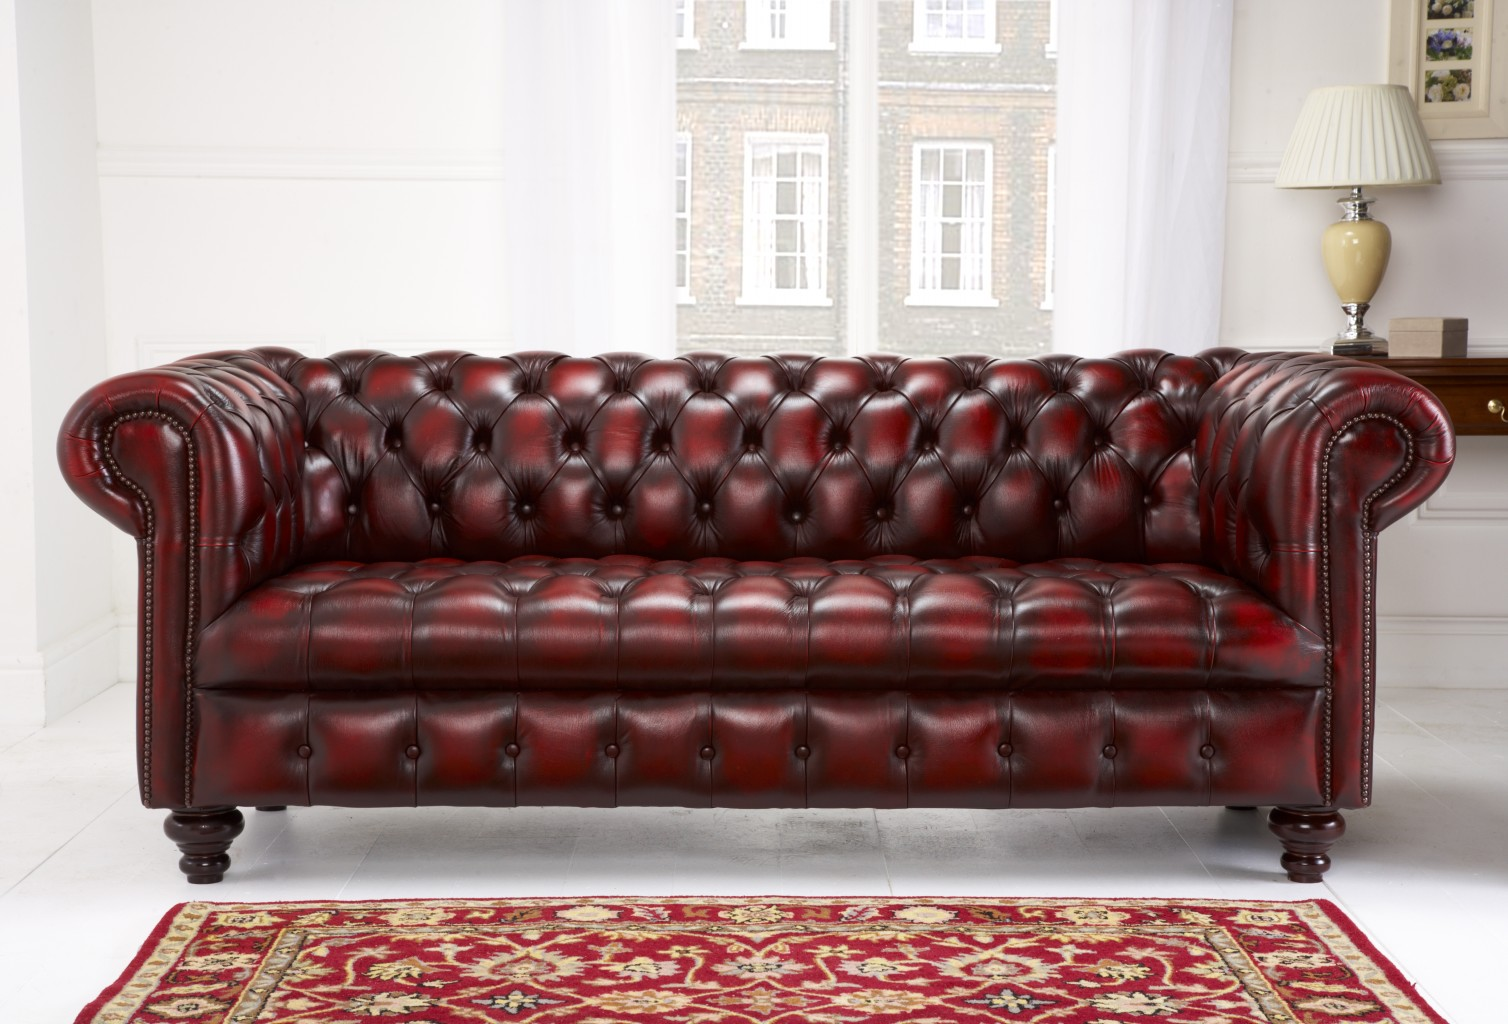 Edwardian Chesterfield English Chesterfields